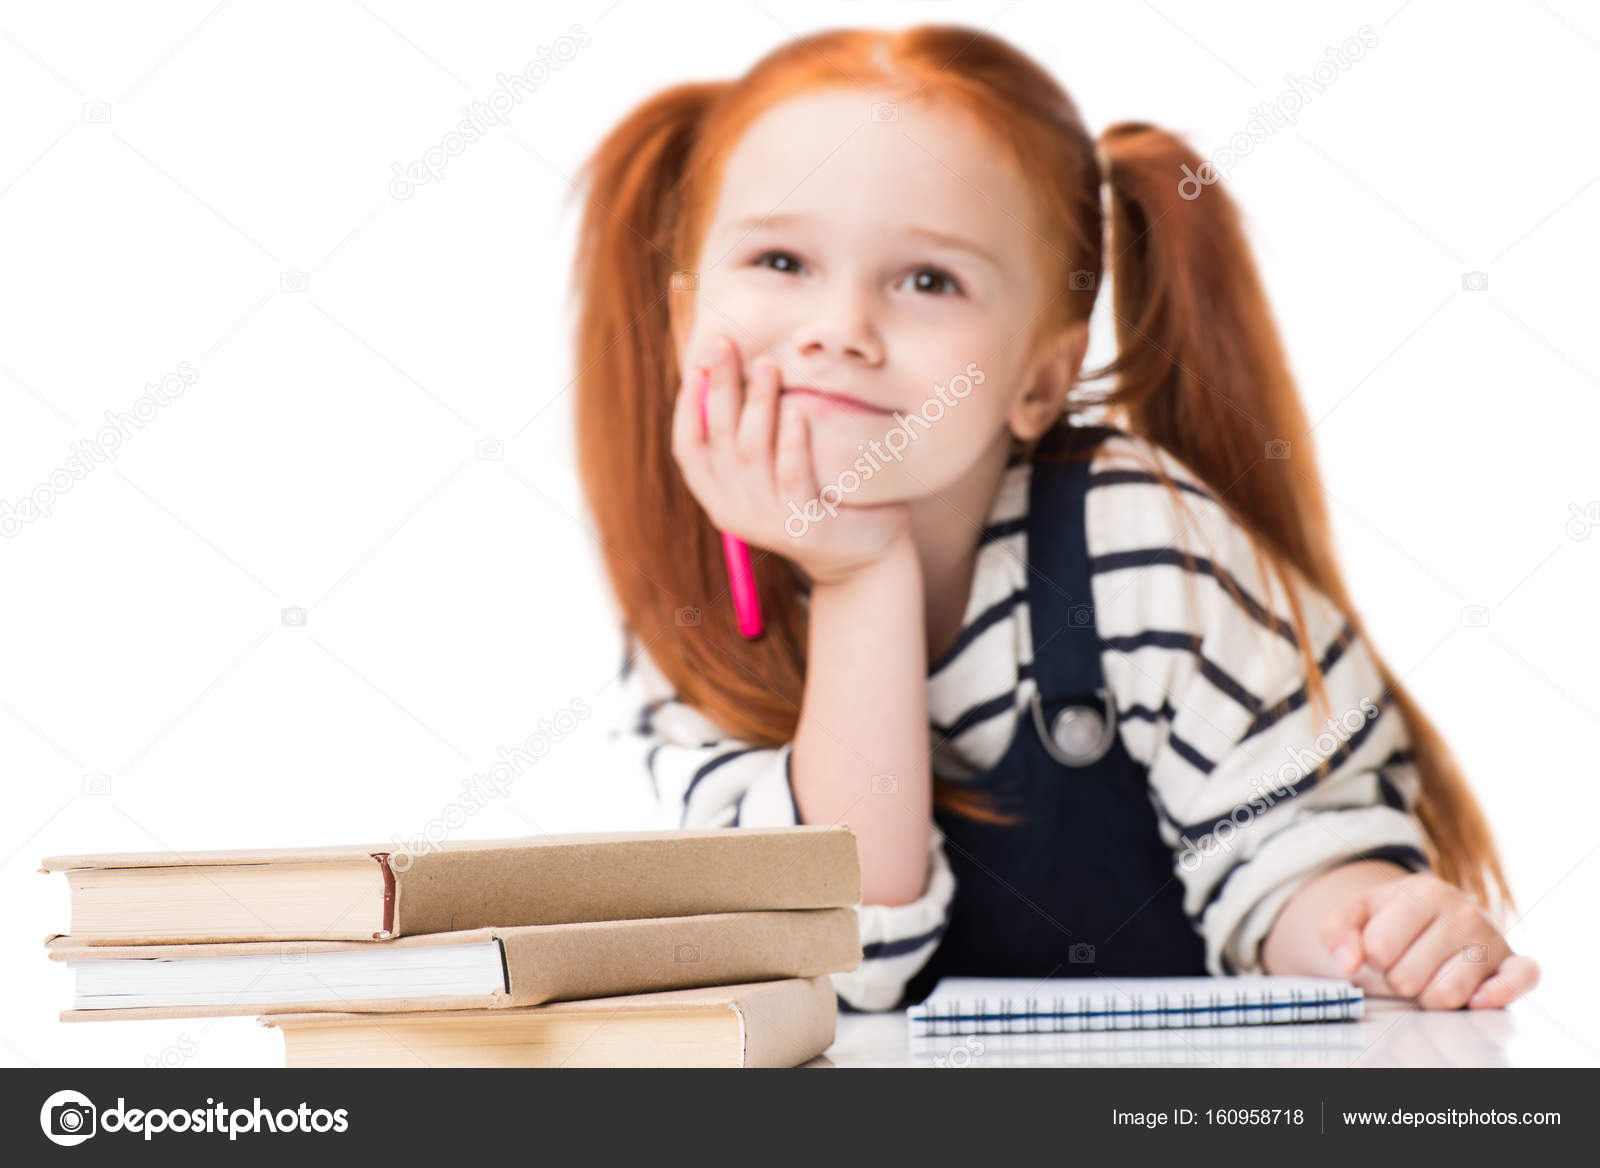 depositphotos_160958718-stock-photo-schoolgirl-drawing-in-notebook.jpg